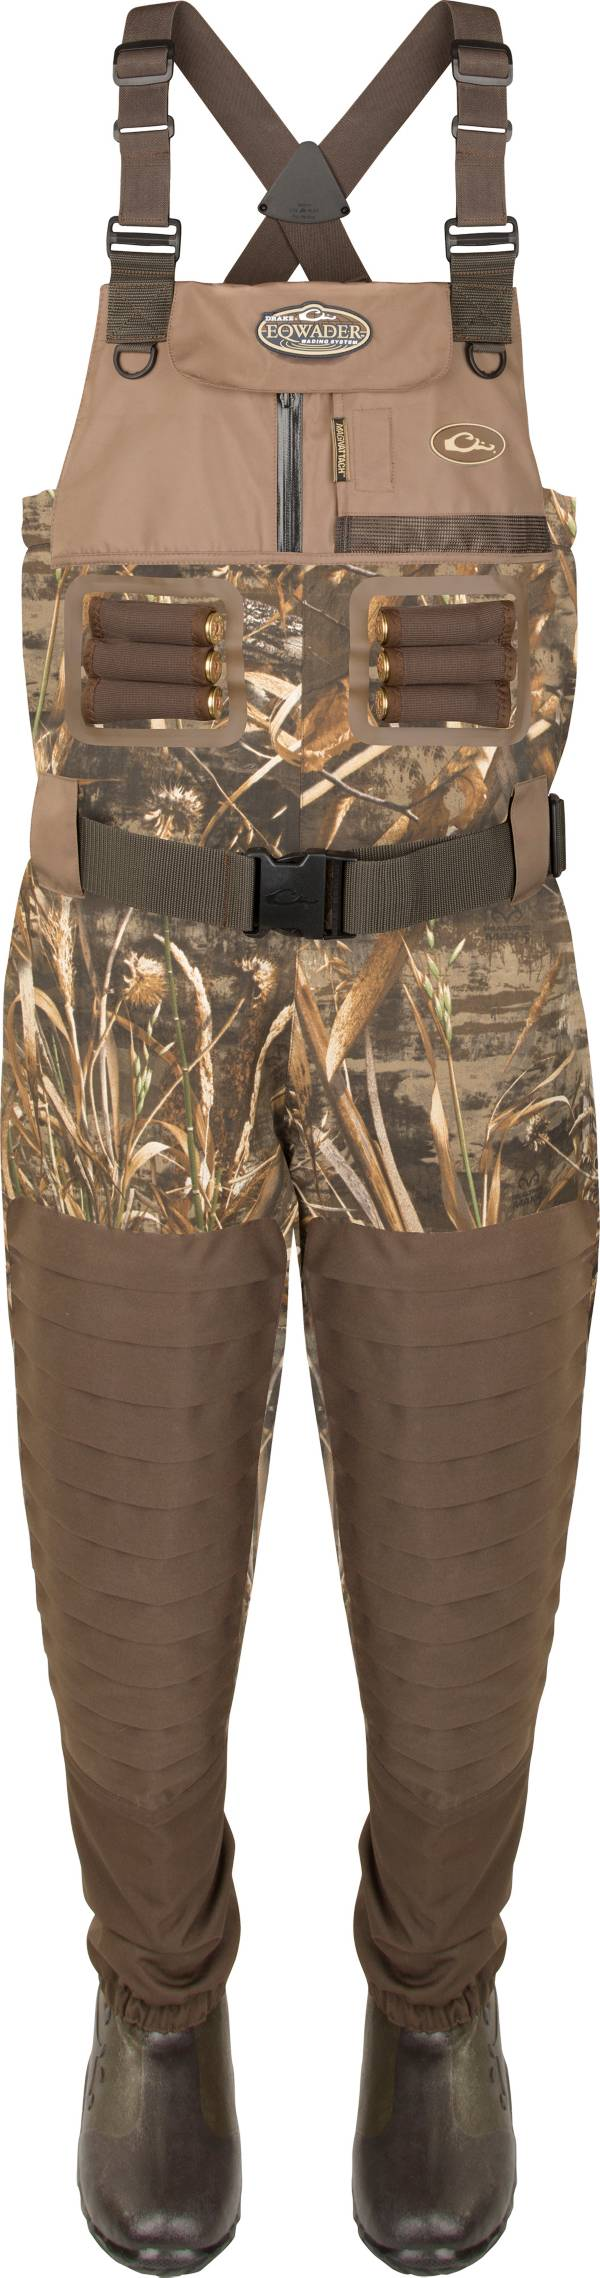 Drake Waterfowl Guardian Elite Insulated Breathable Chest Waders product image